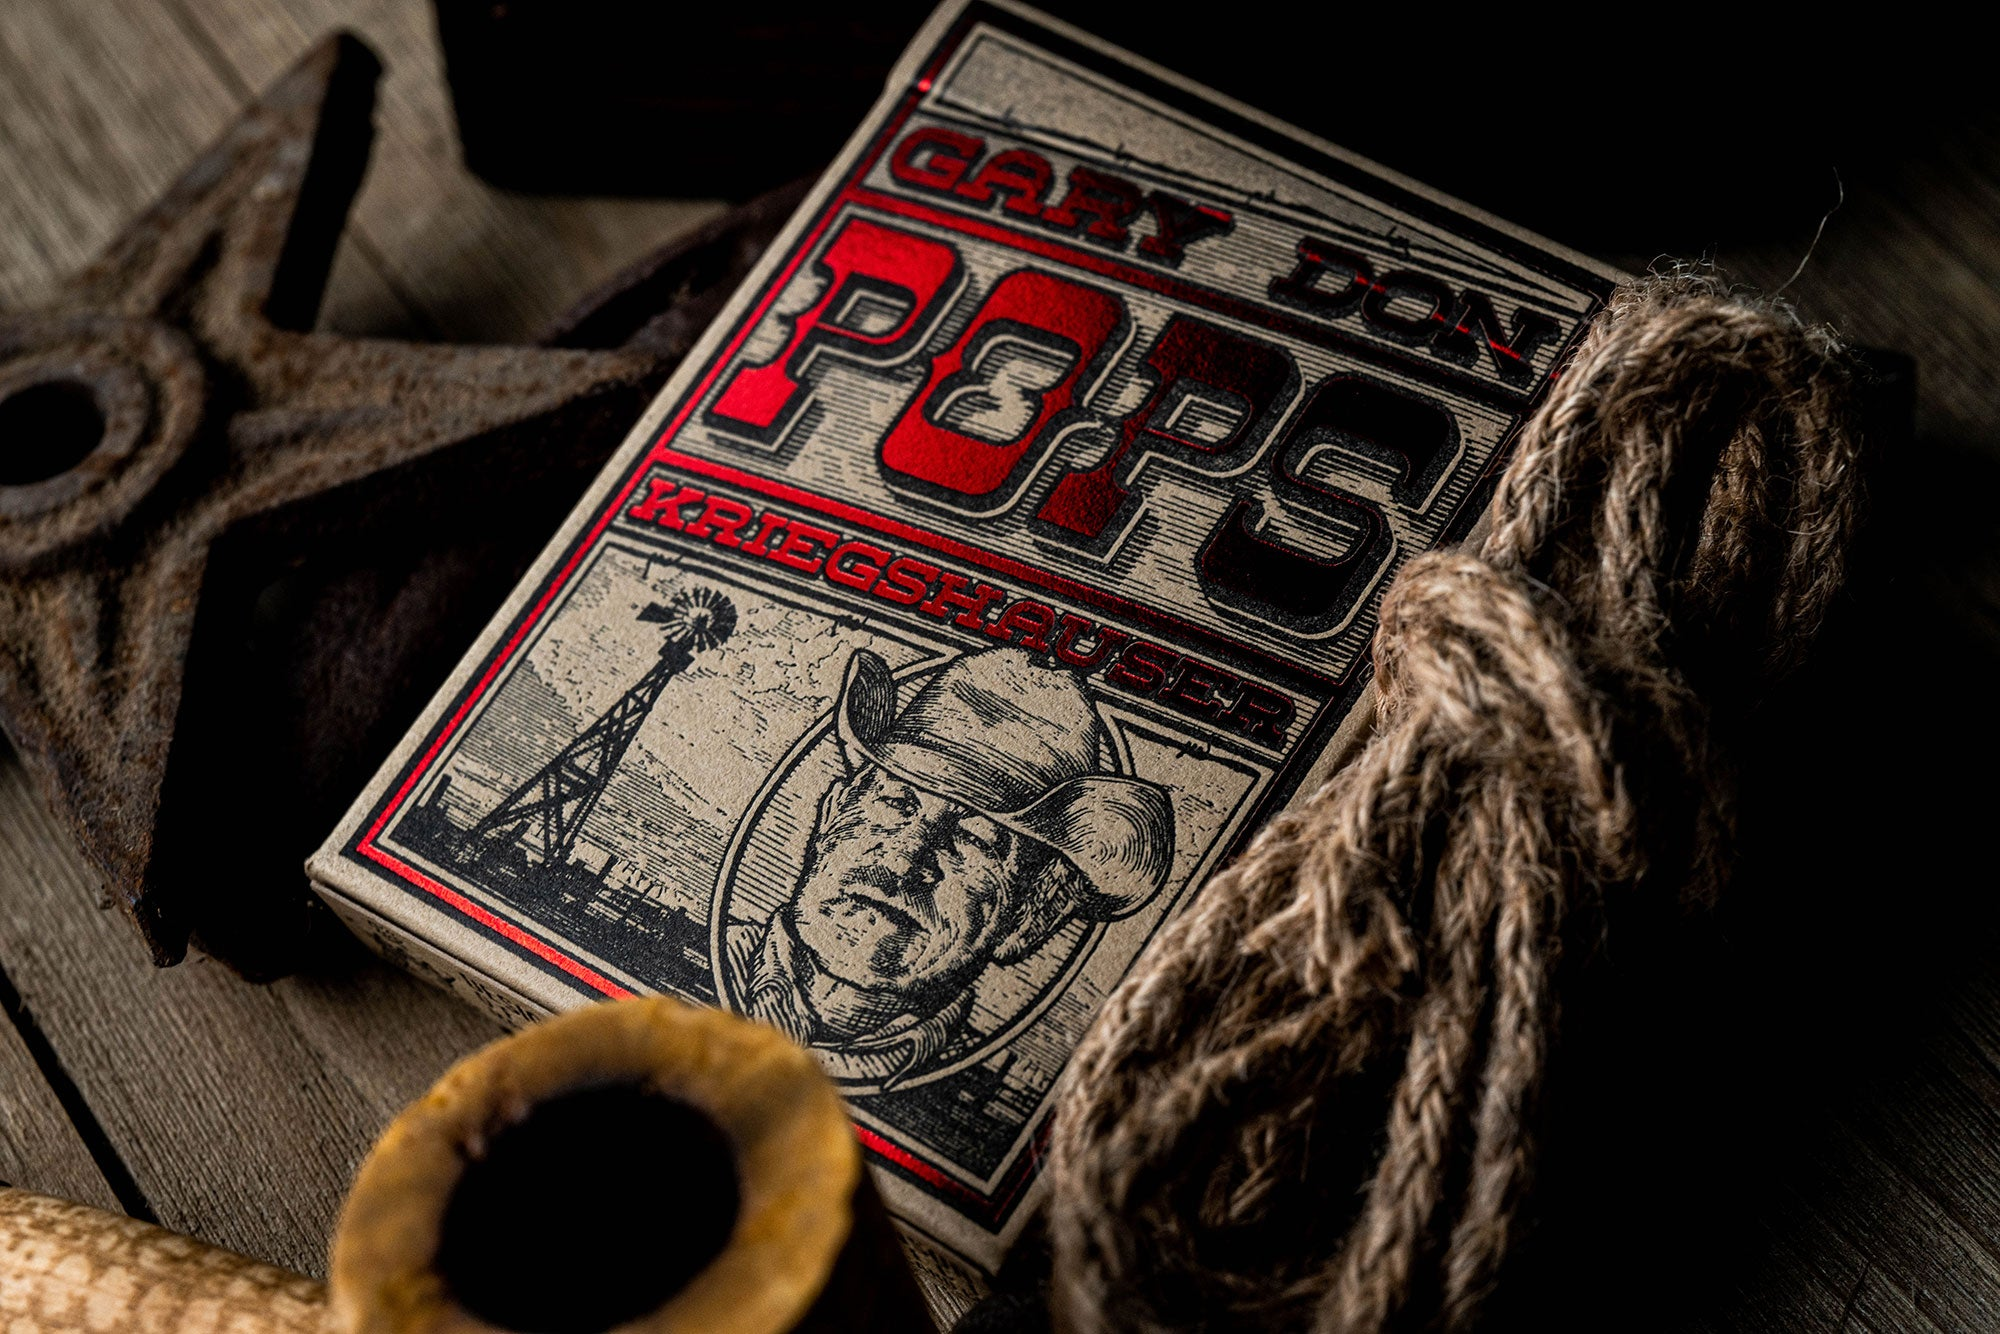 Gary Don Pops - Scott Seed Co.